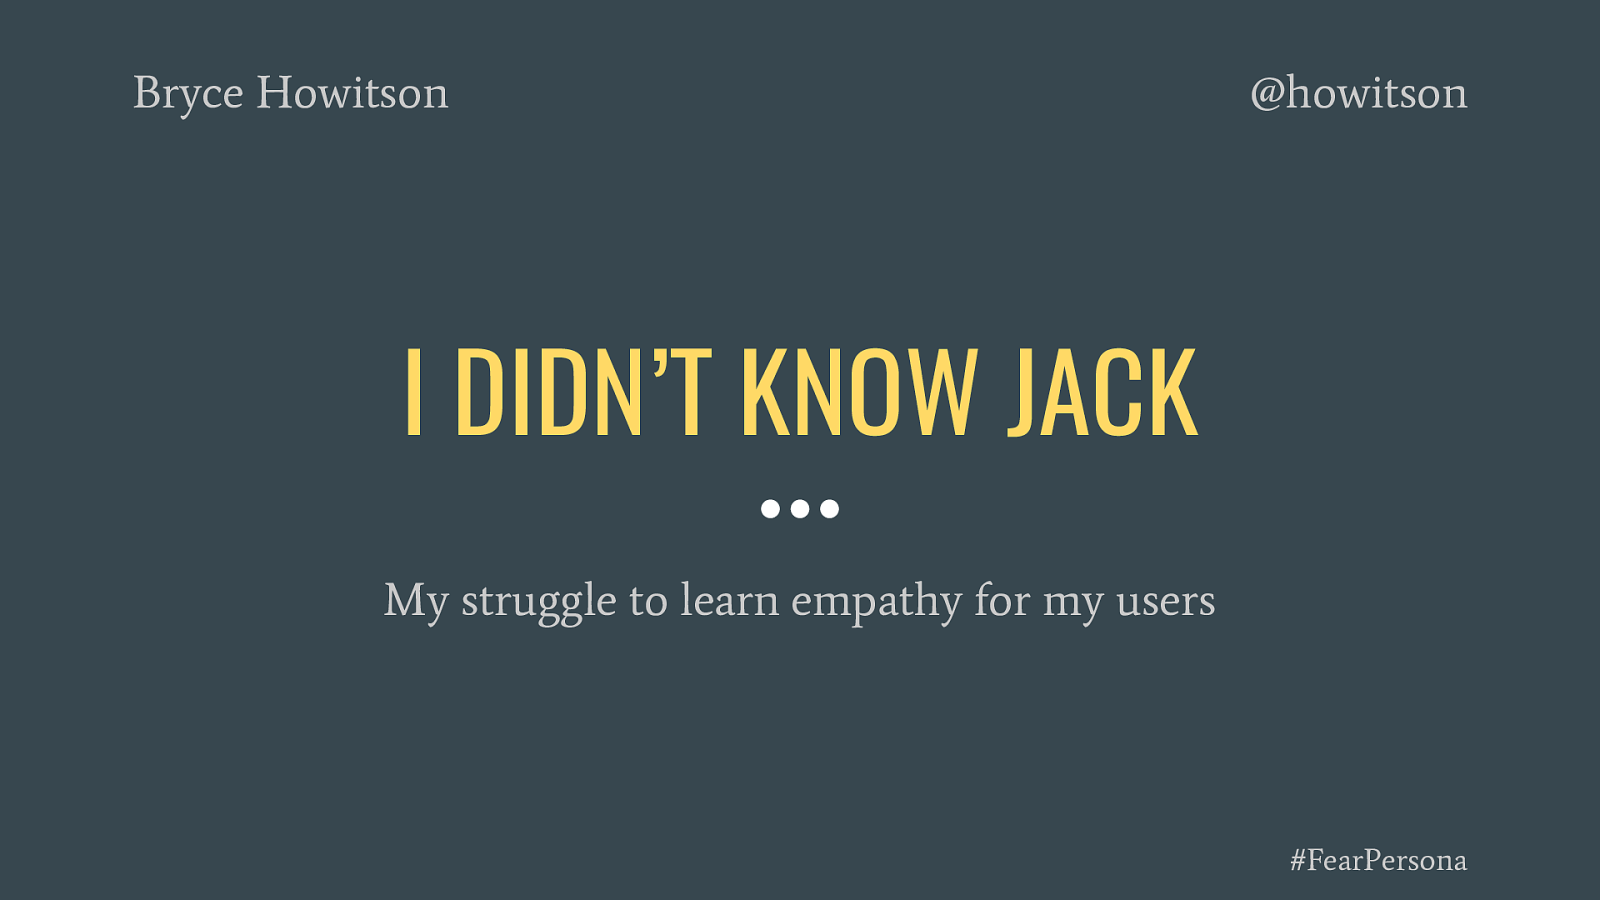 I Didn't Know Jack: Learning to empathize with my users